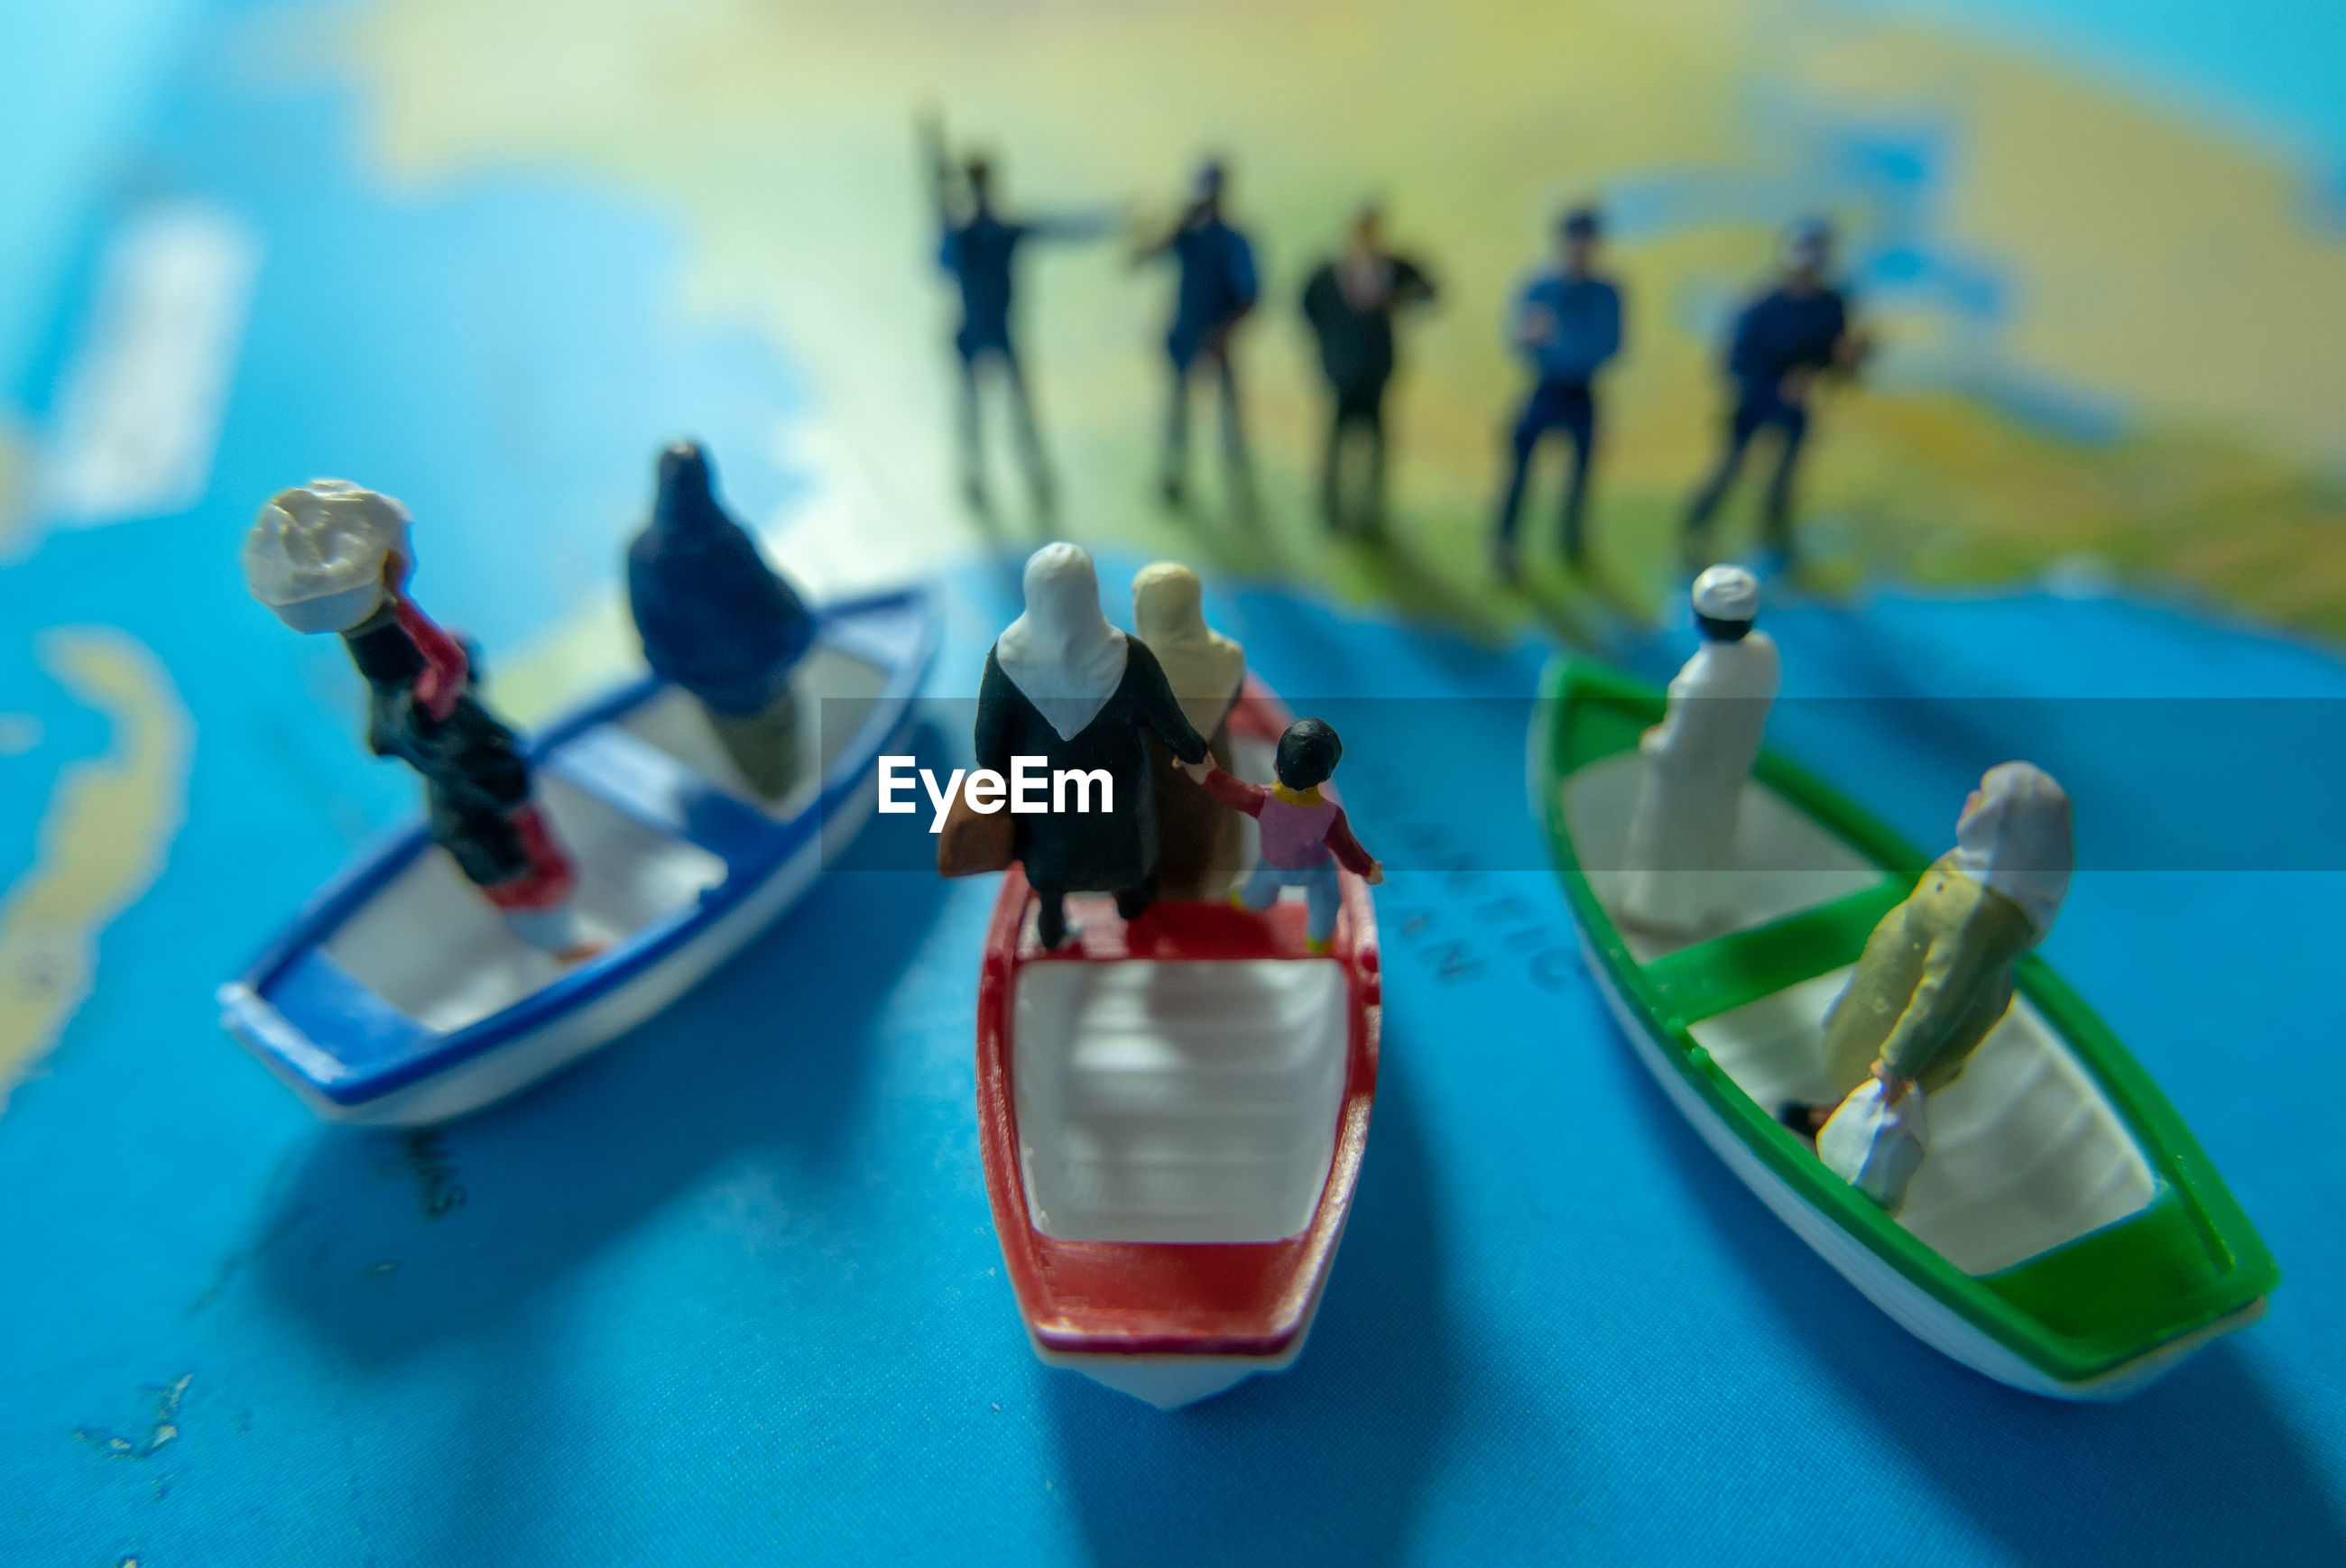 High angle view of figurines on map